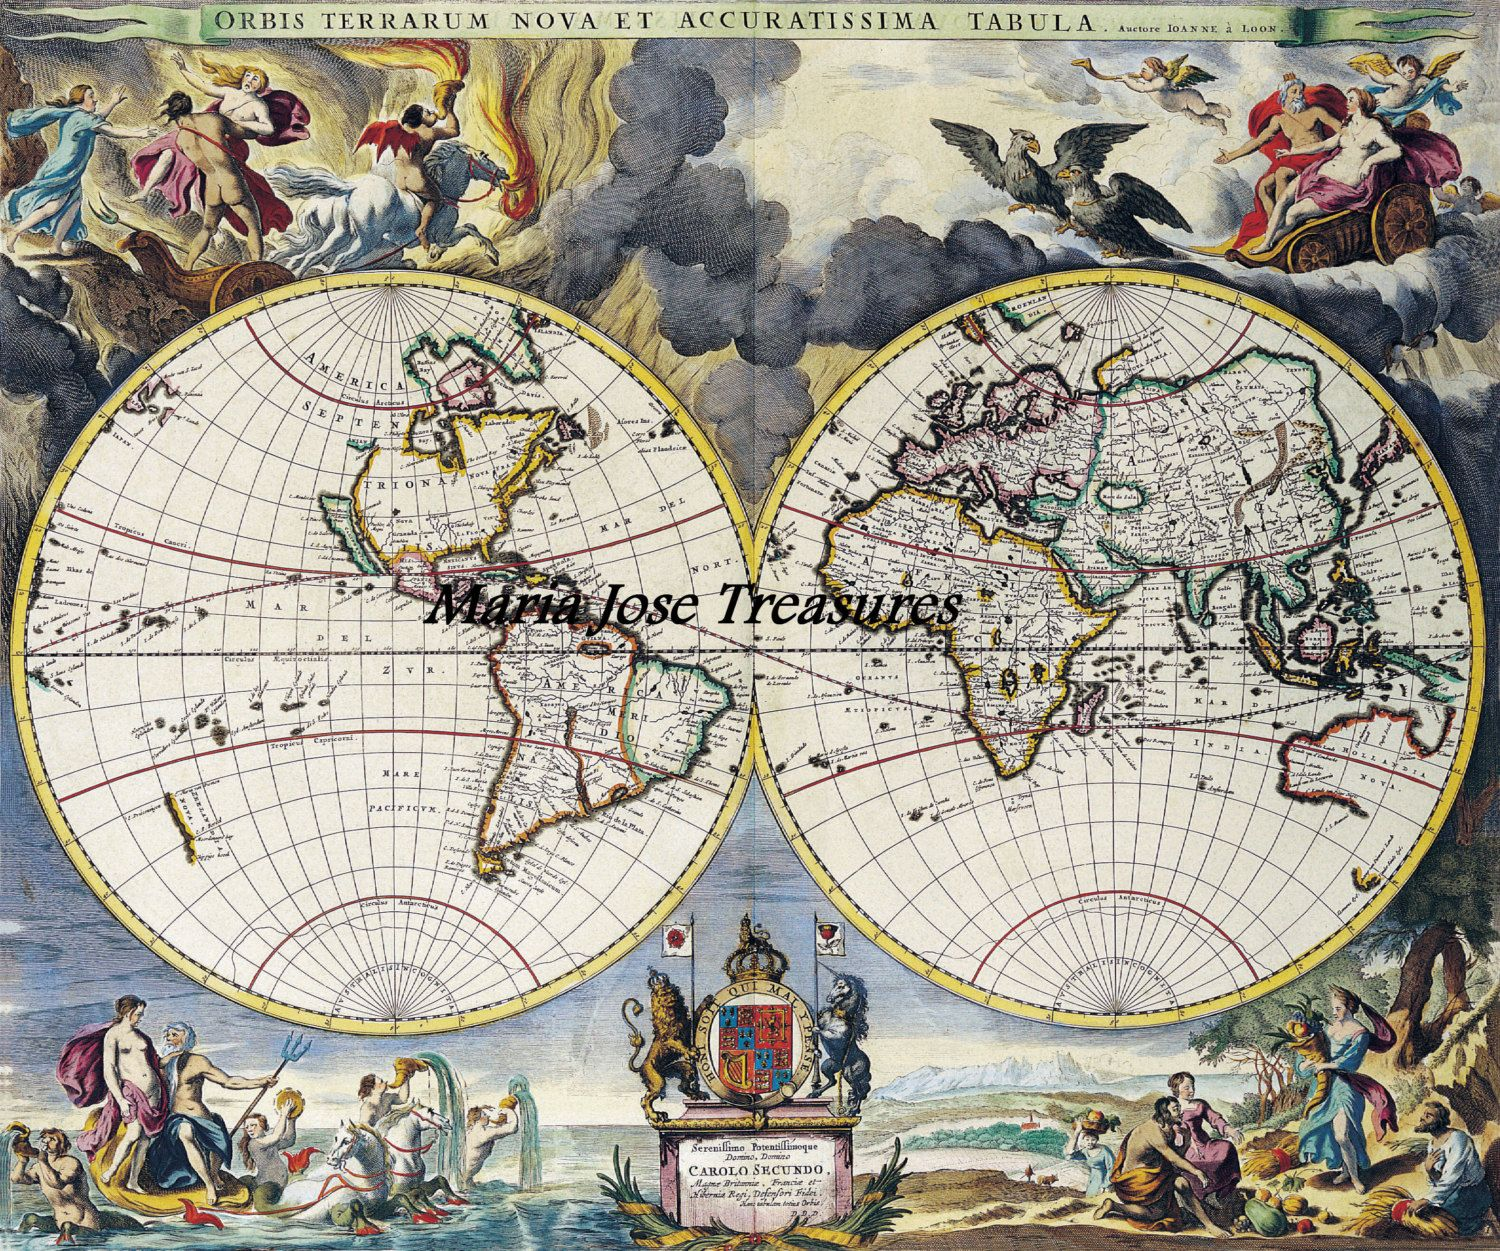 Vintage world globe maps 3 digital download by vintage world globe maps 3 digital download by mariajosetreasures on etsy gumiabroncs Gallery